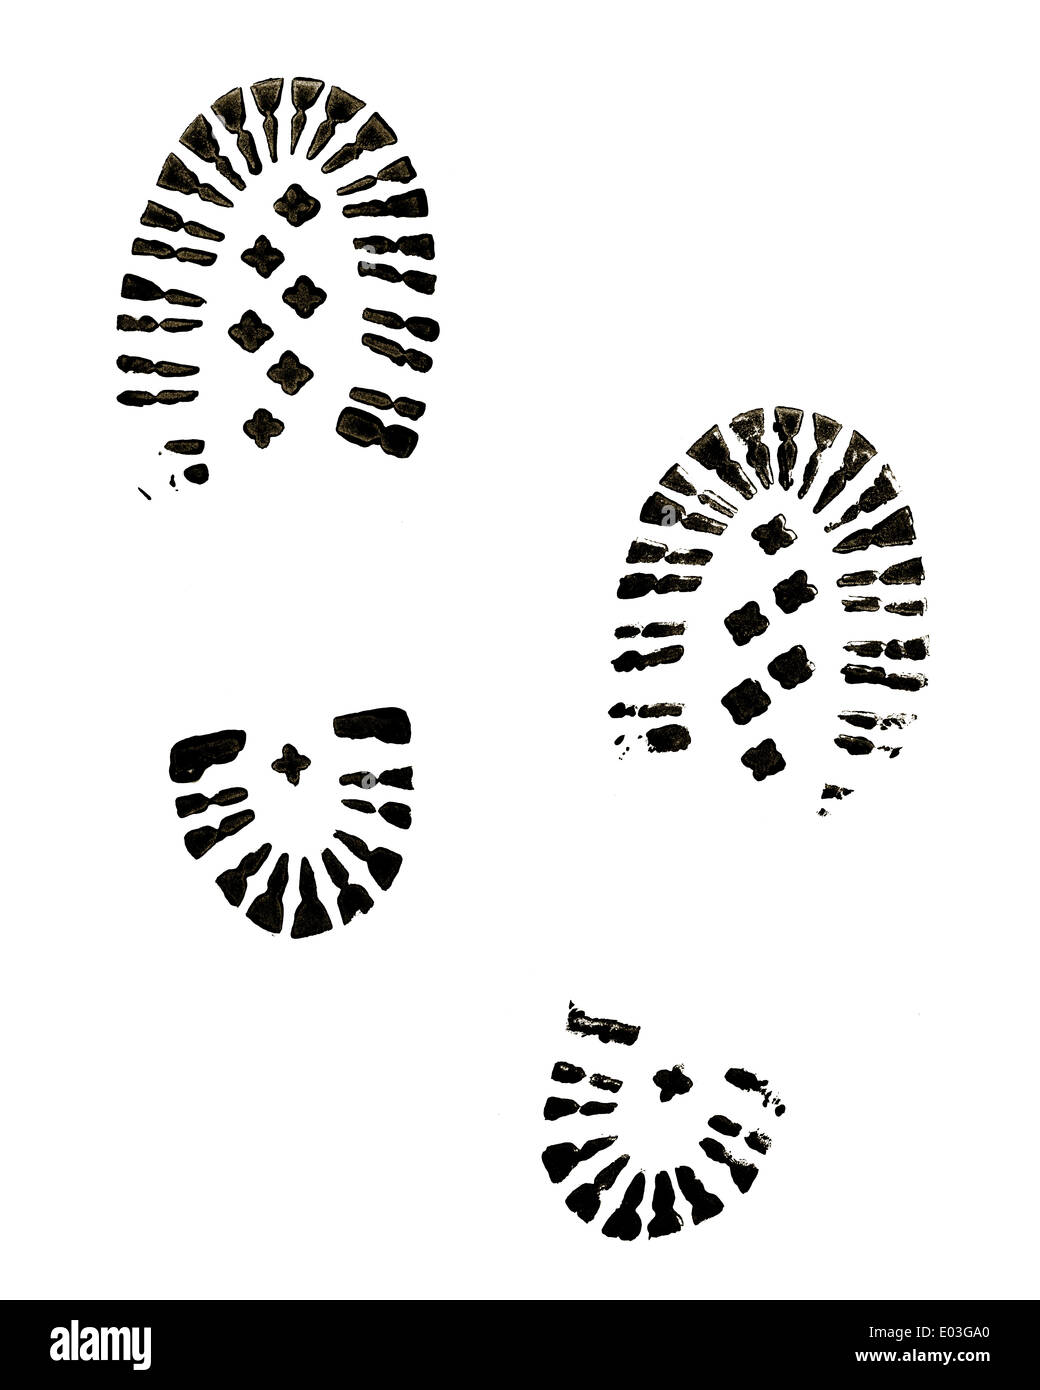 Black Boot Prints Isolated on White Background. - Stock Image